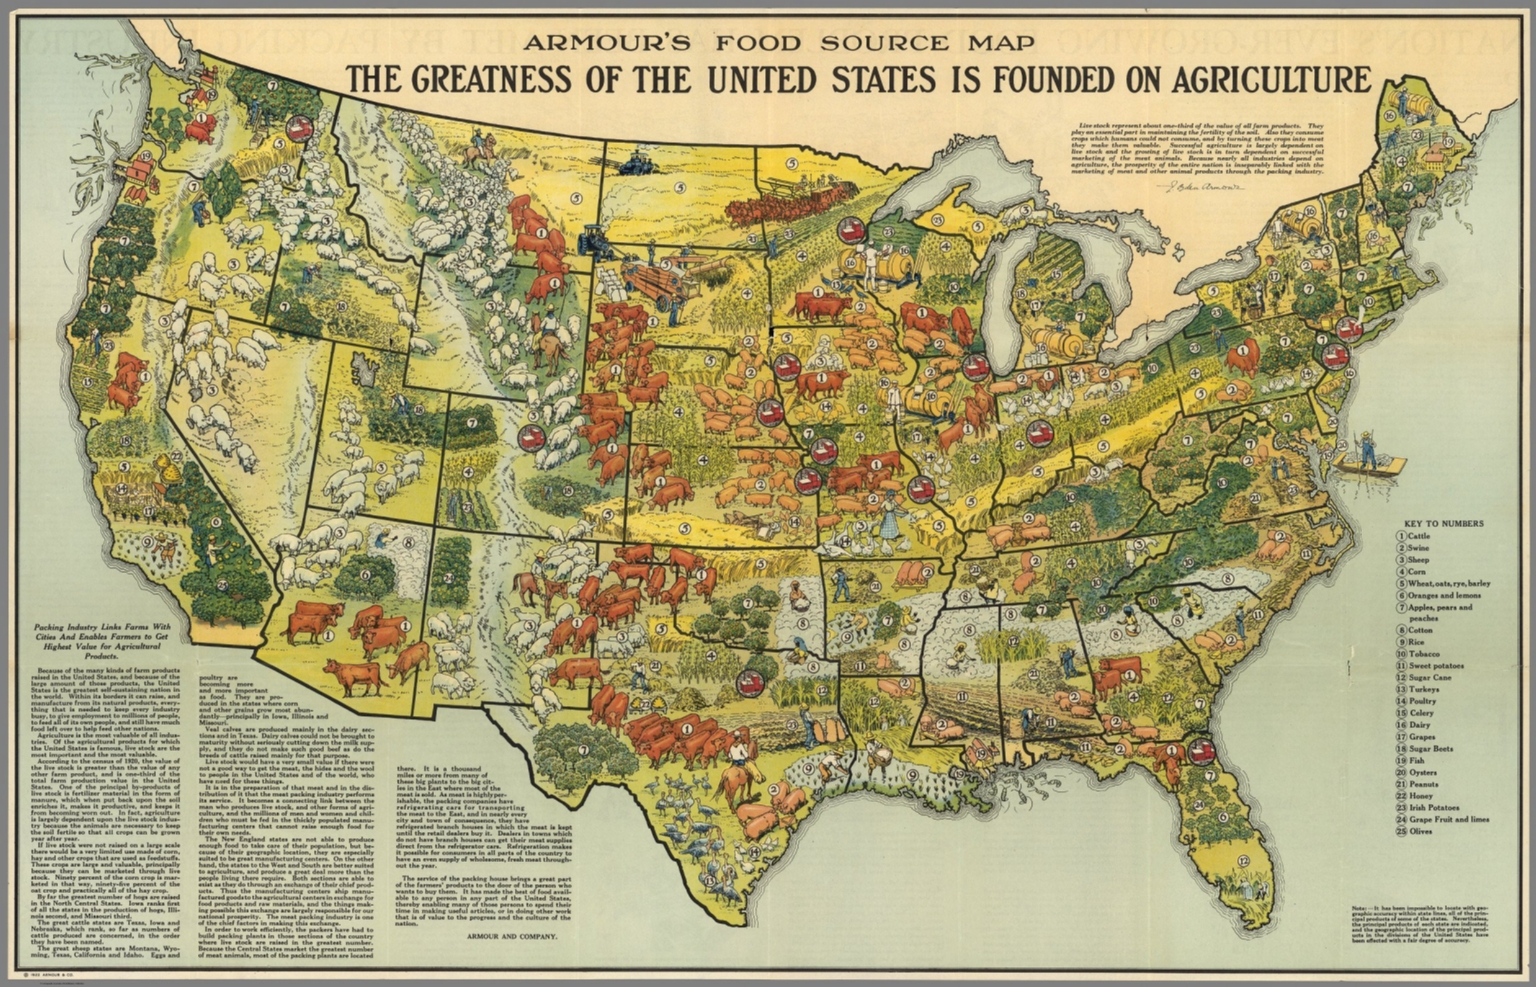 Armours food source map david rumsey historical map collection armours food source map sciox Gallery